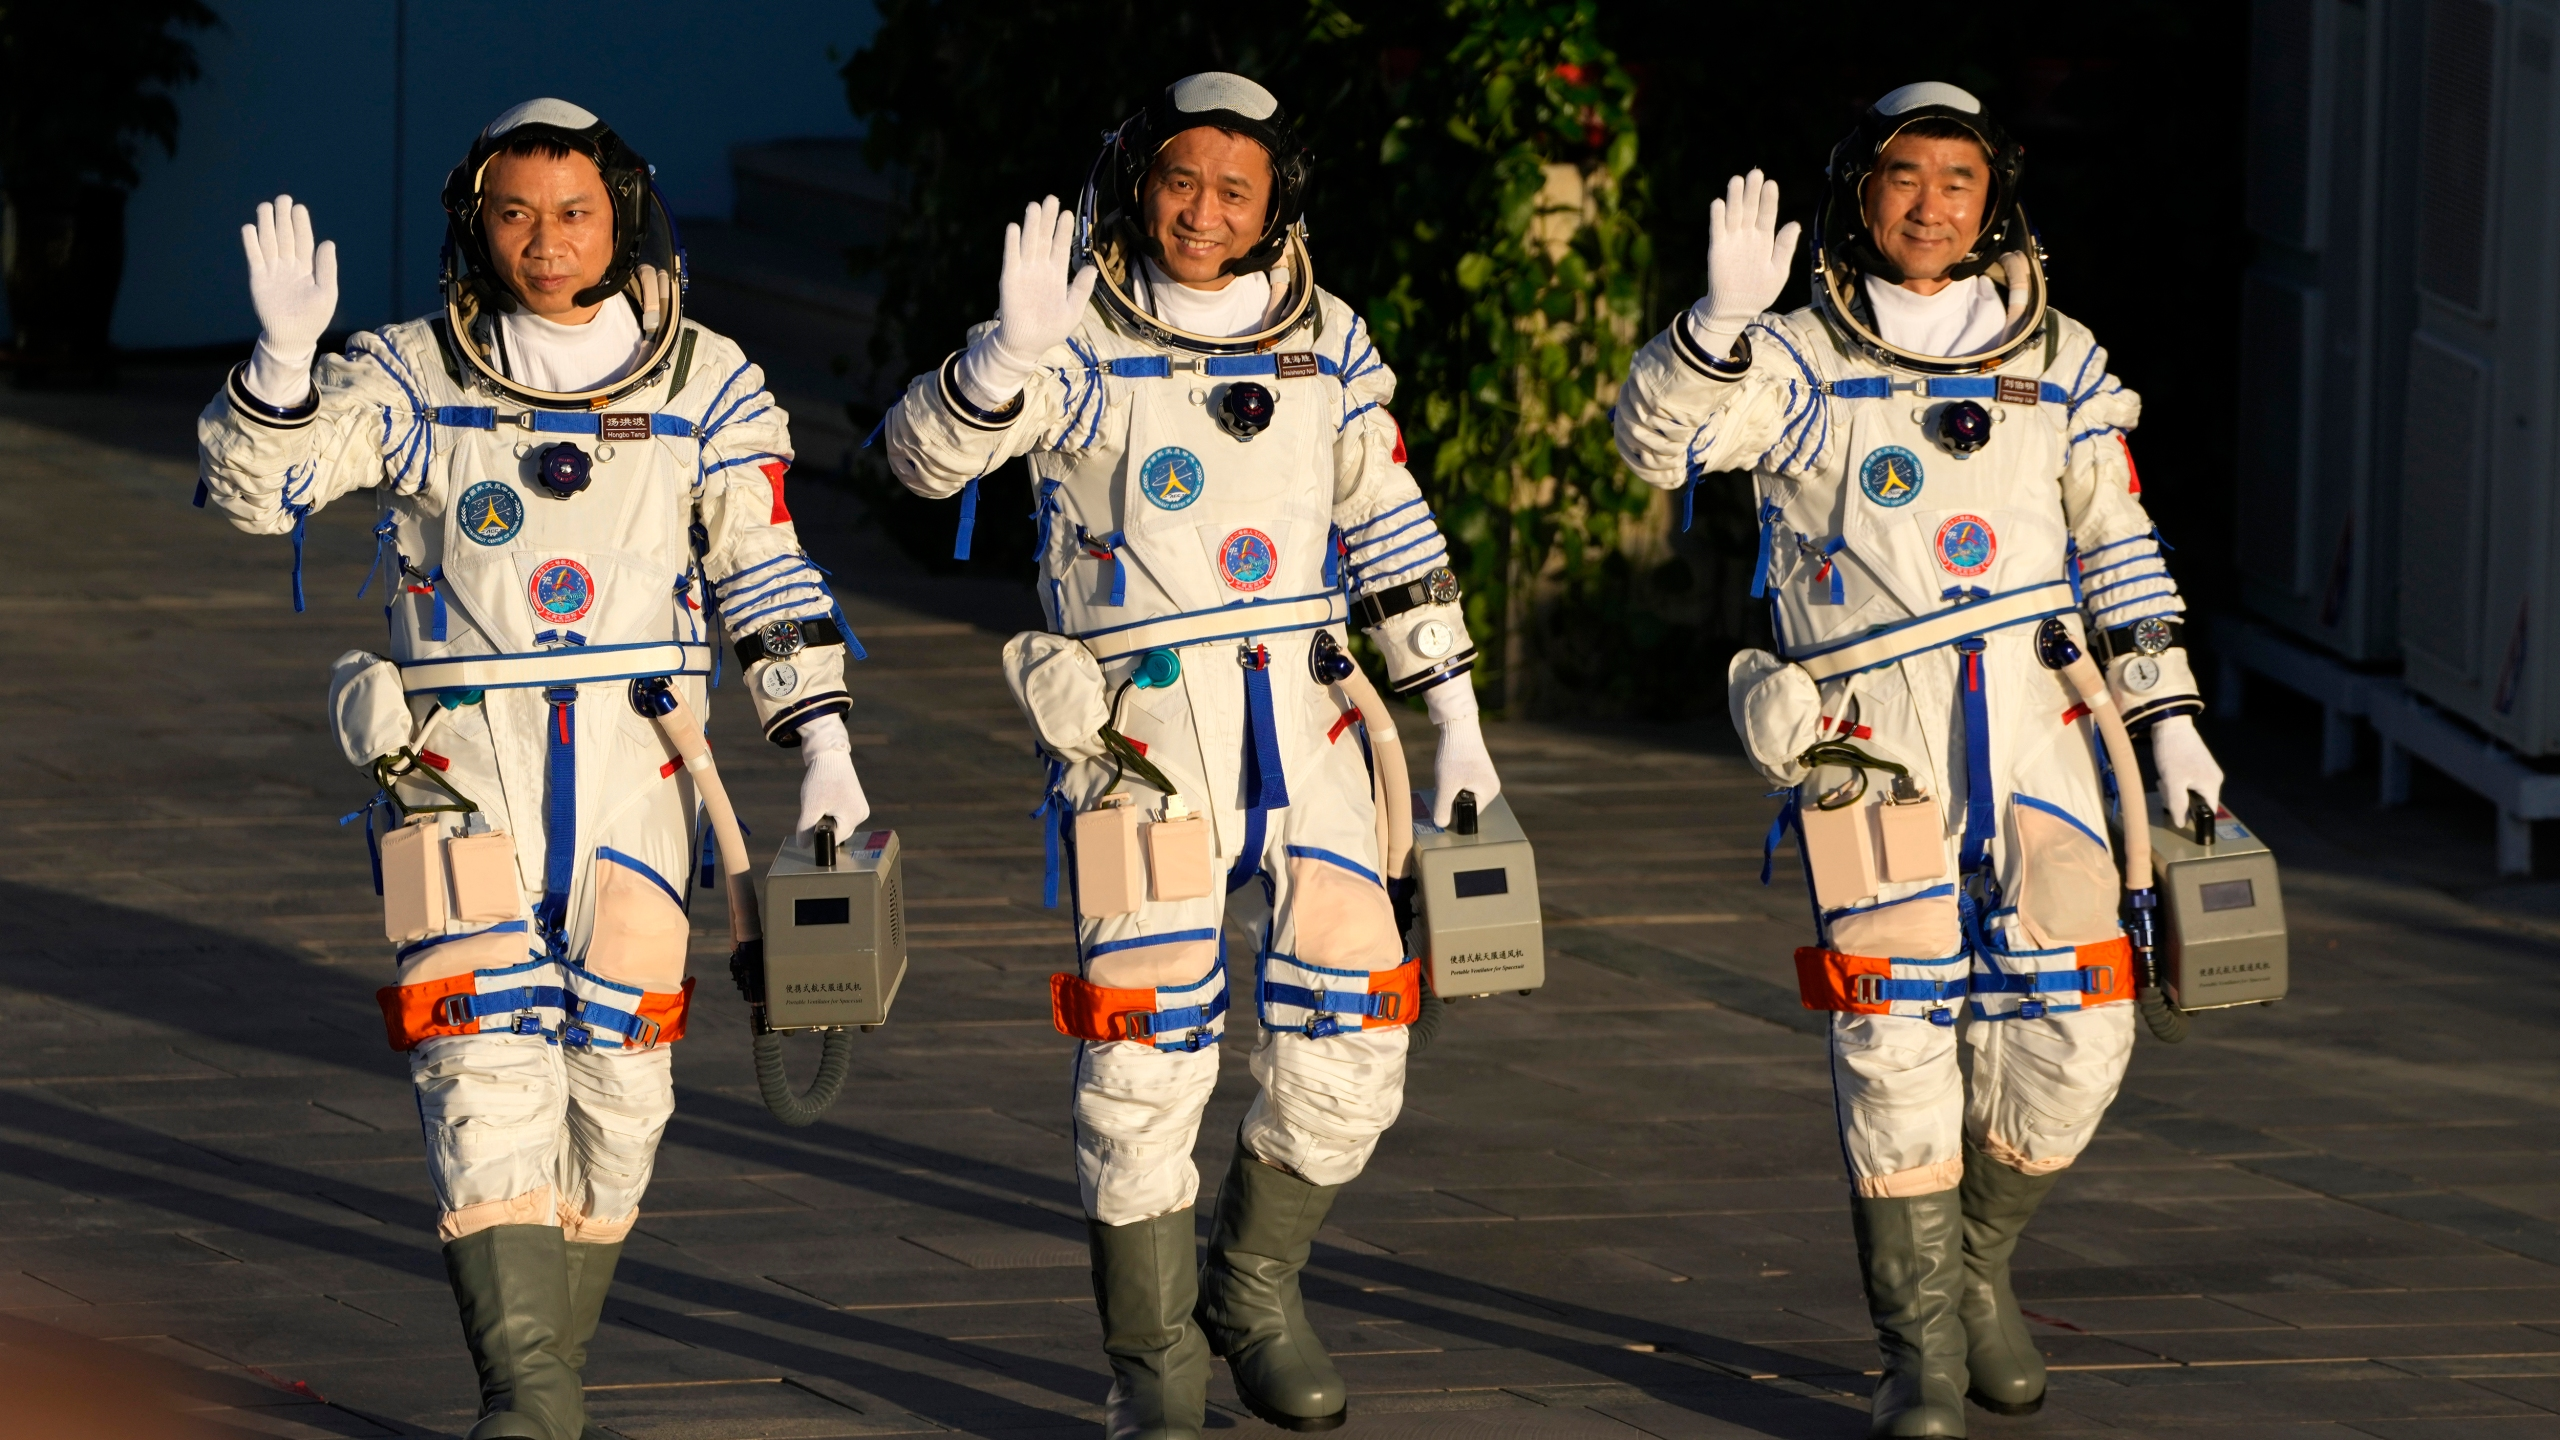 Chinese astronauts, from left, Tang Hongbo, Nie Haisheng, and Liu Boming wave as they prepare to board for liftoff at the Jiuquan Satellite Launch Center in Jiuquan in northwestern China on June 17, 2021. (AP Photo/Ng Han Guan)